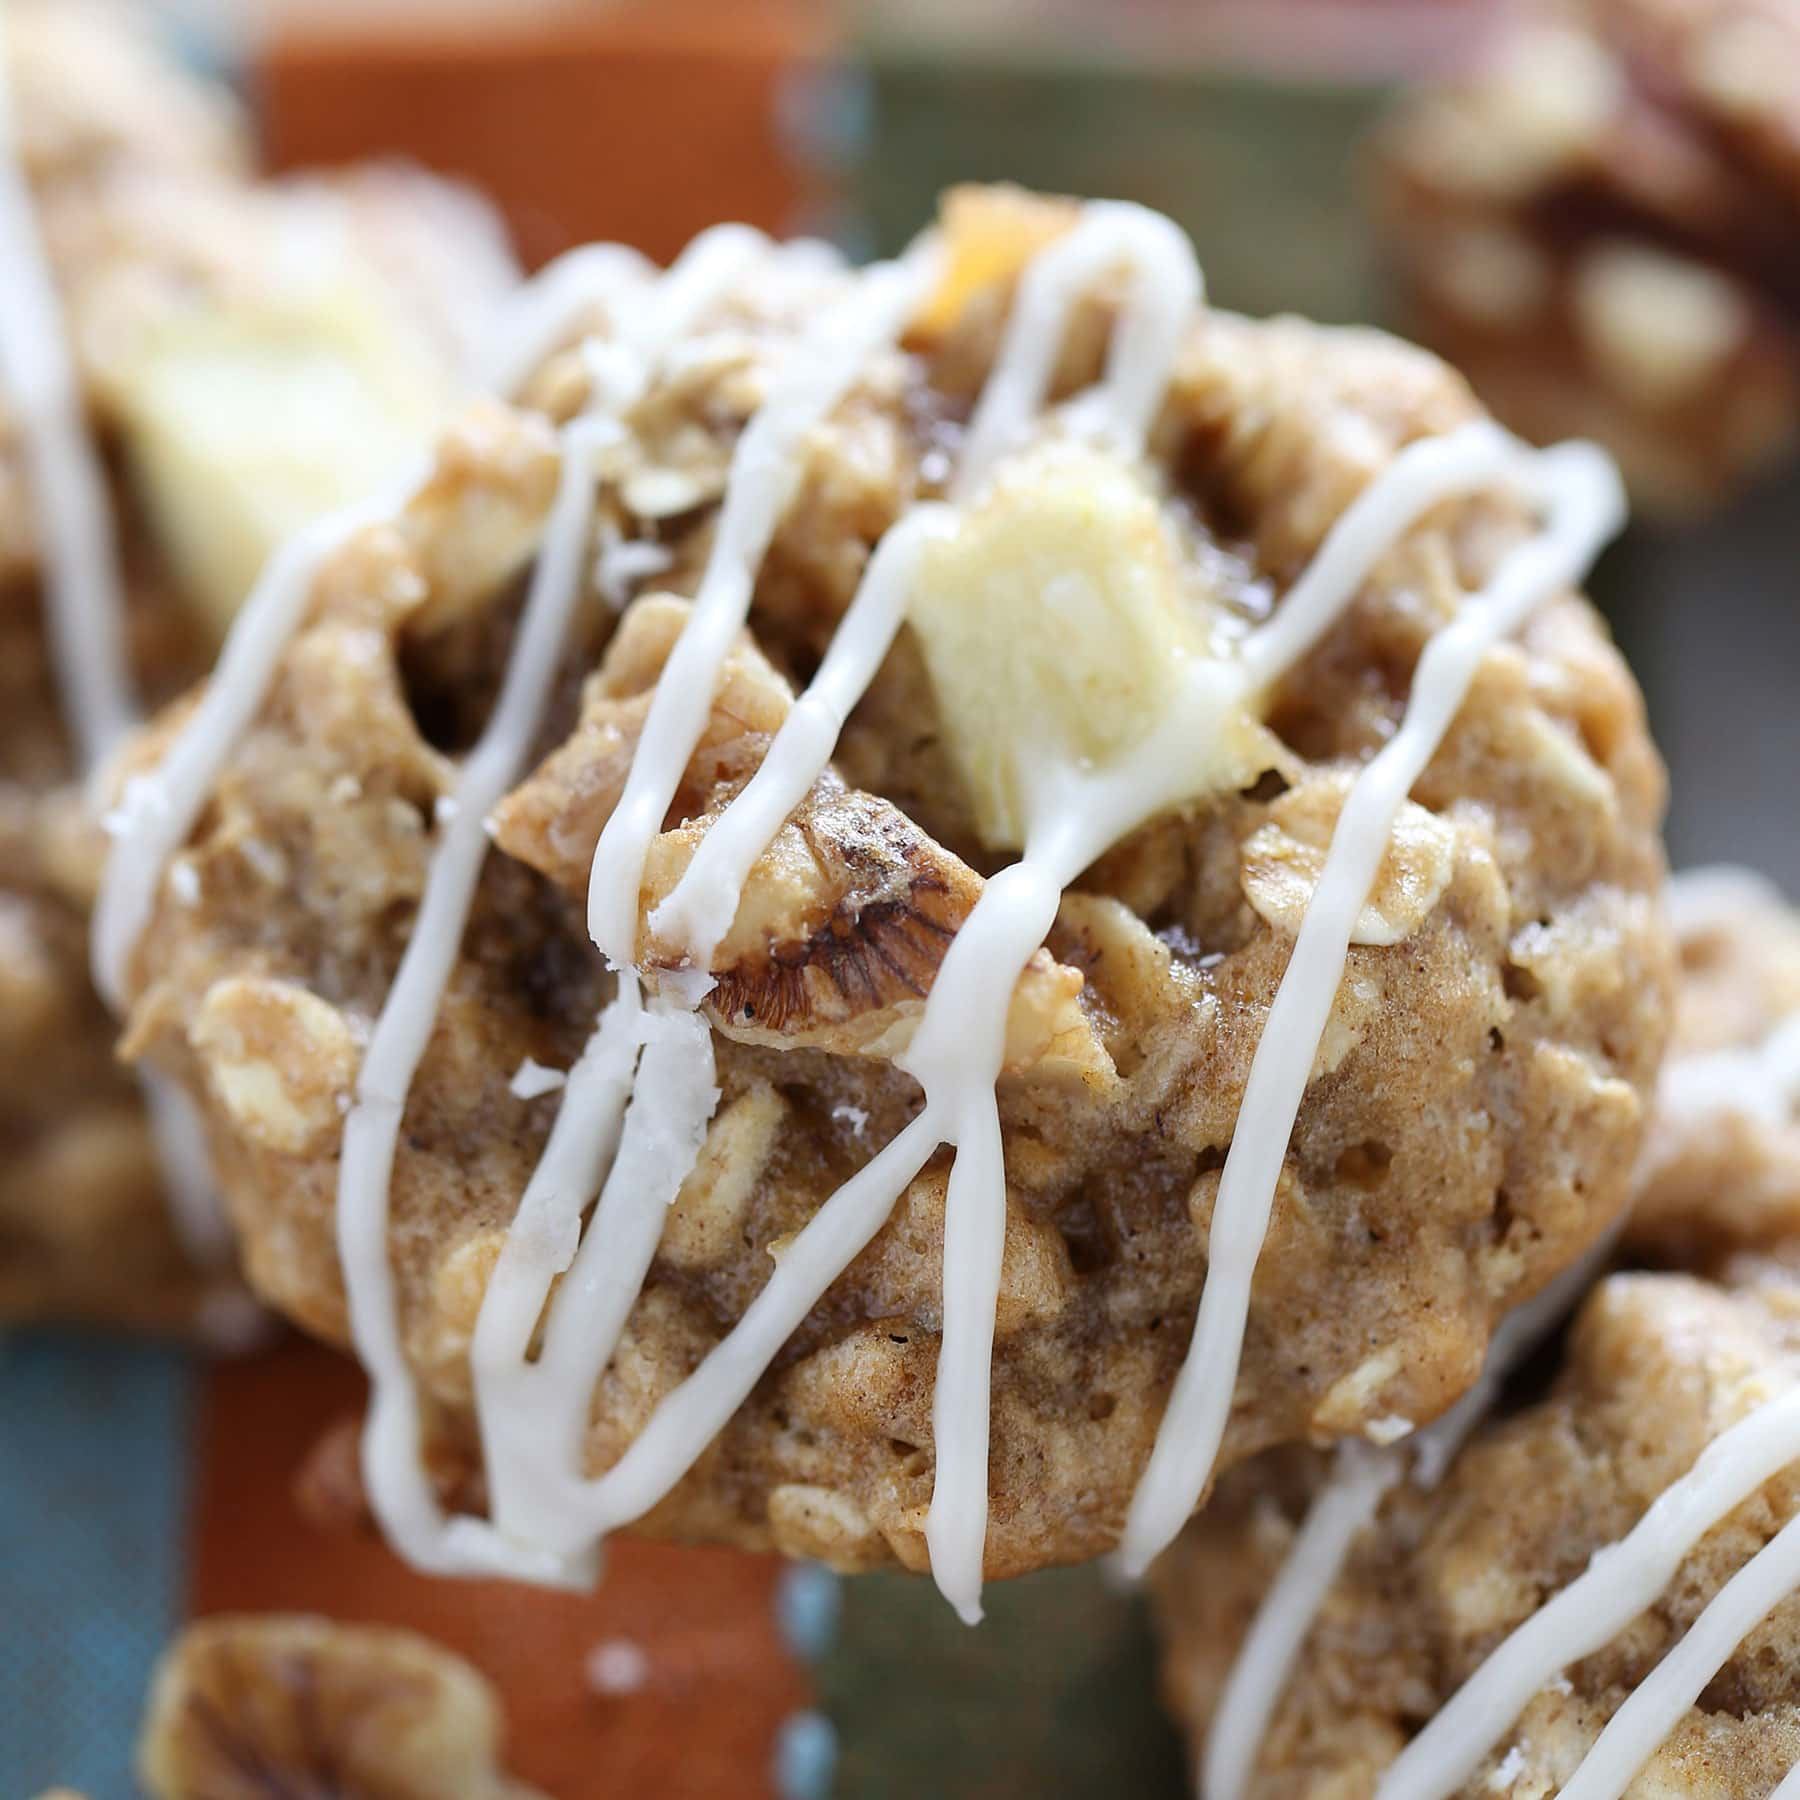 Apple Walnut Oatmeal Cookies are full of warm fall flavors and take just 30 minutes to make from start to finish. You don't even need an electric mixer!